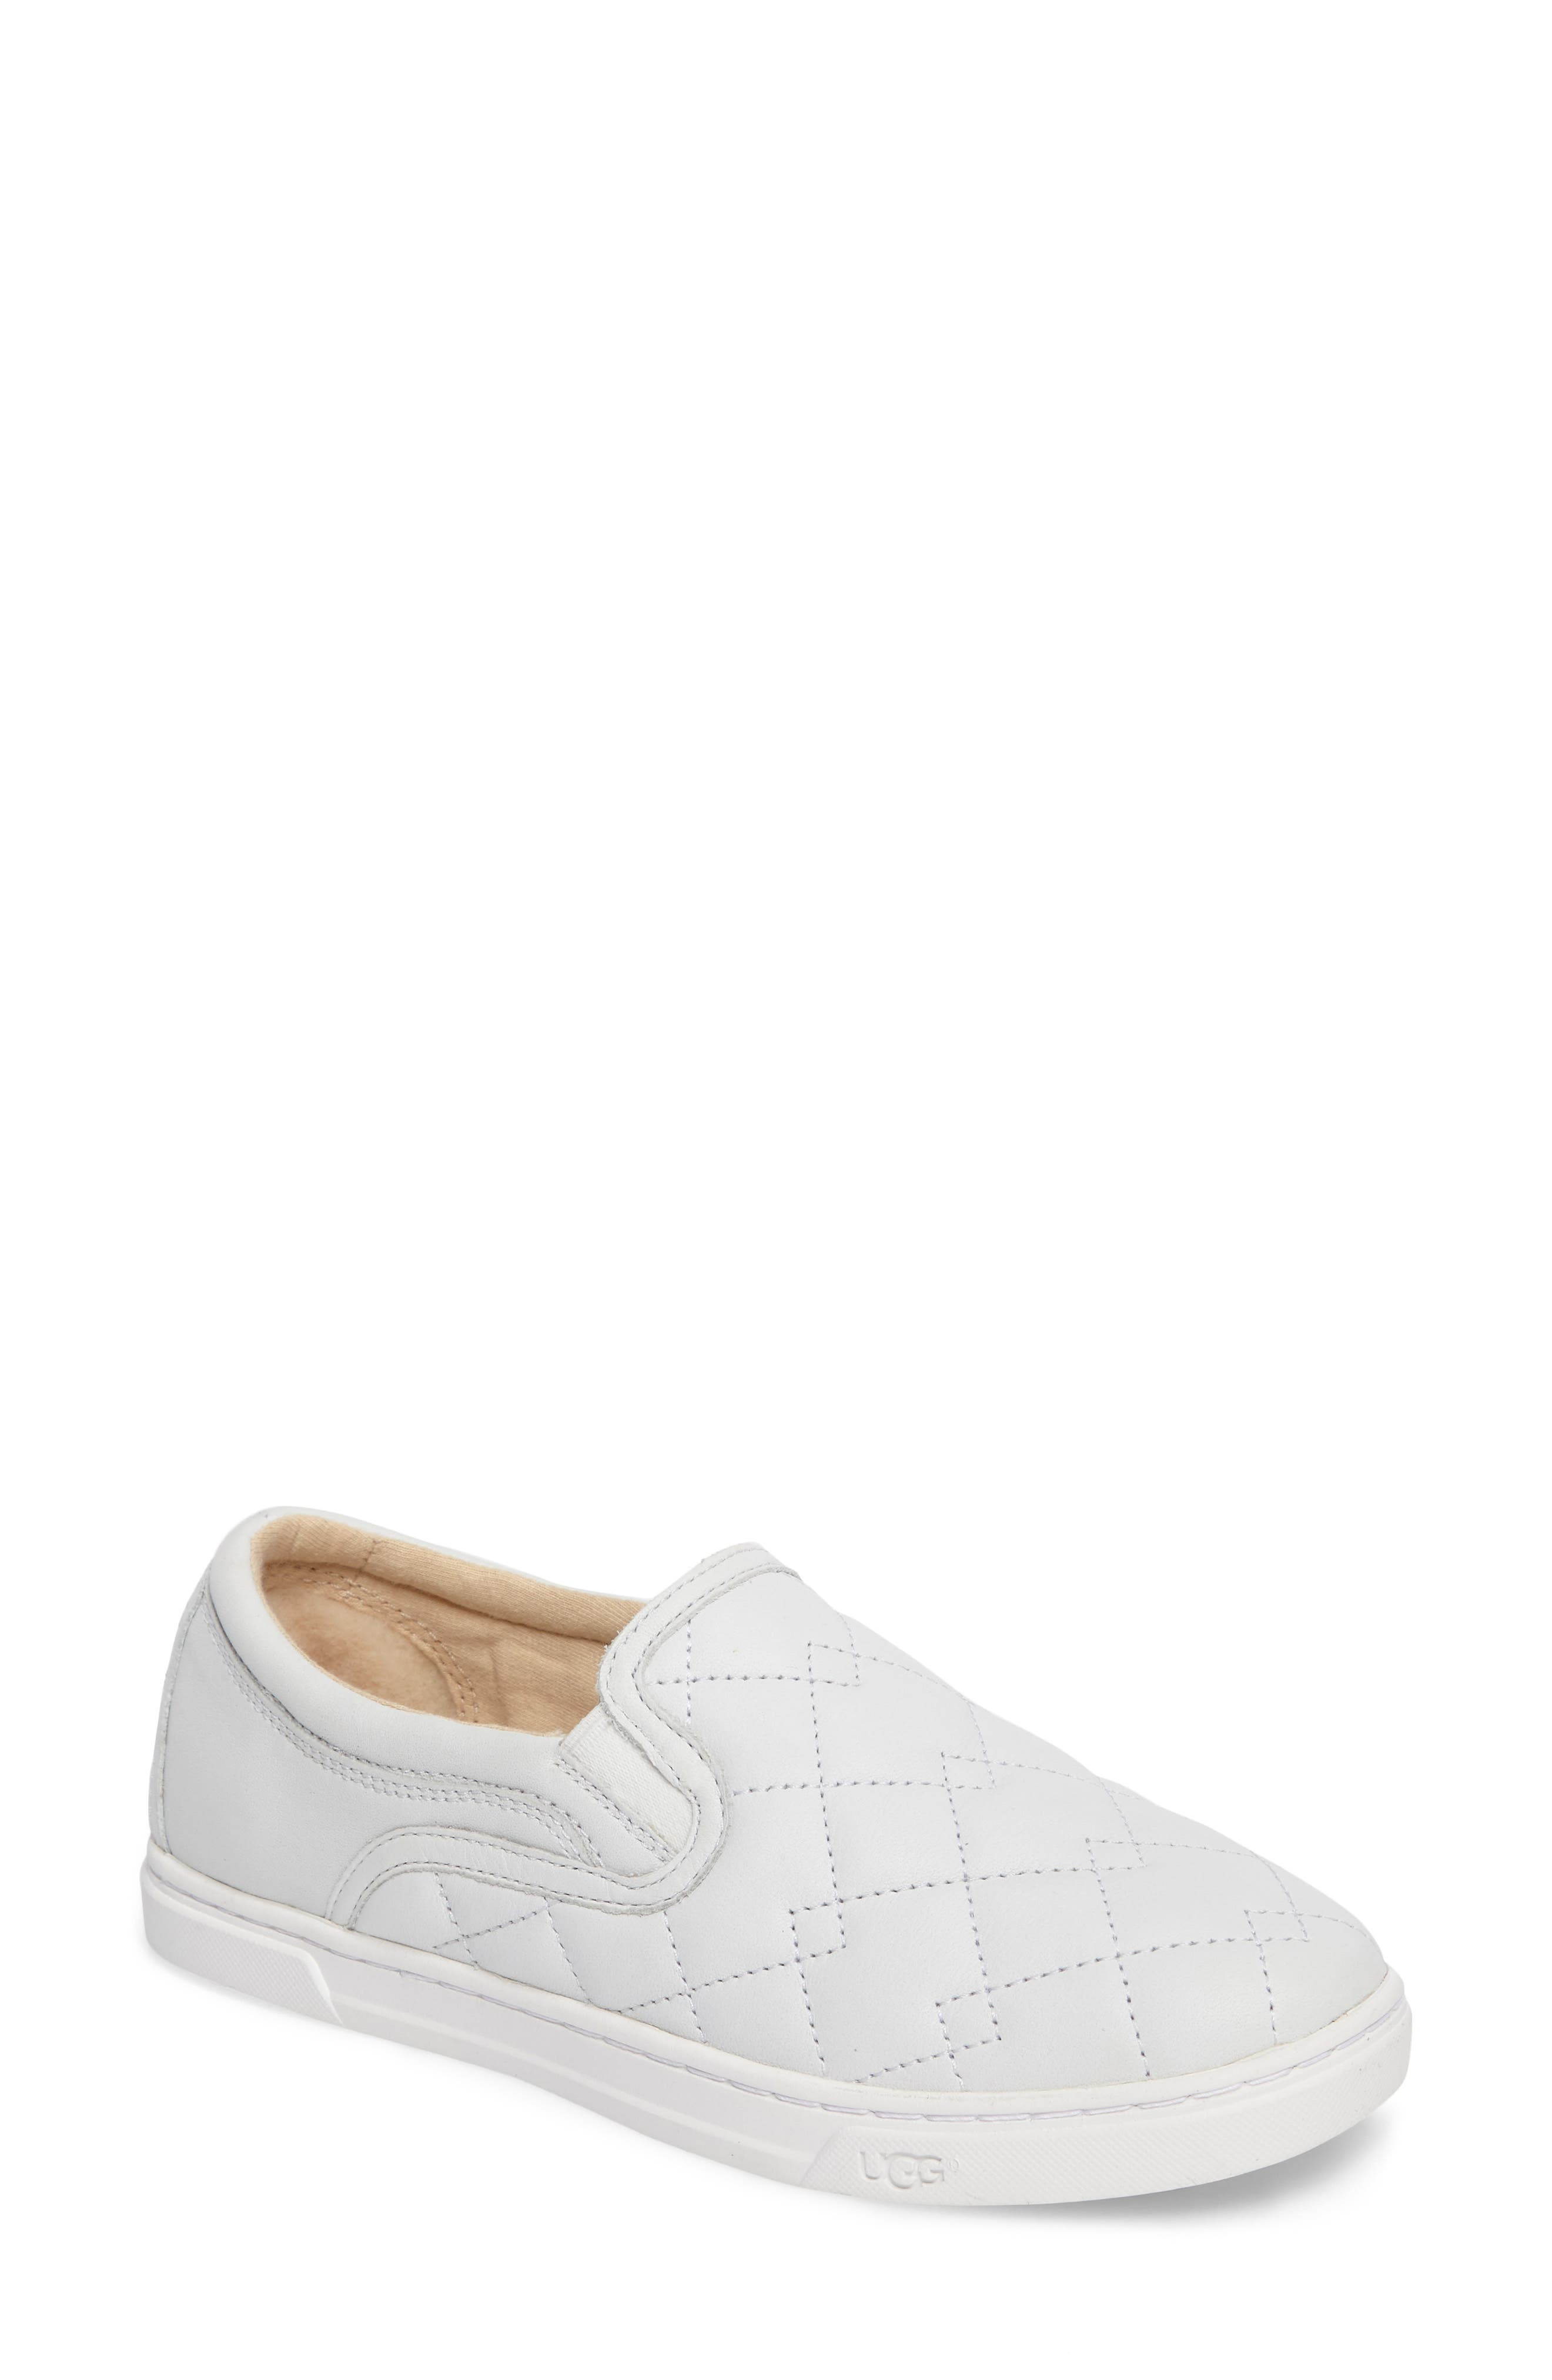 Fierce Deco Quilted Slip-On Sneaker,                             Main thumbnail 1, color,                             100